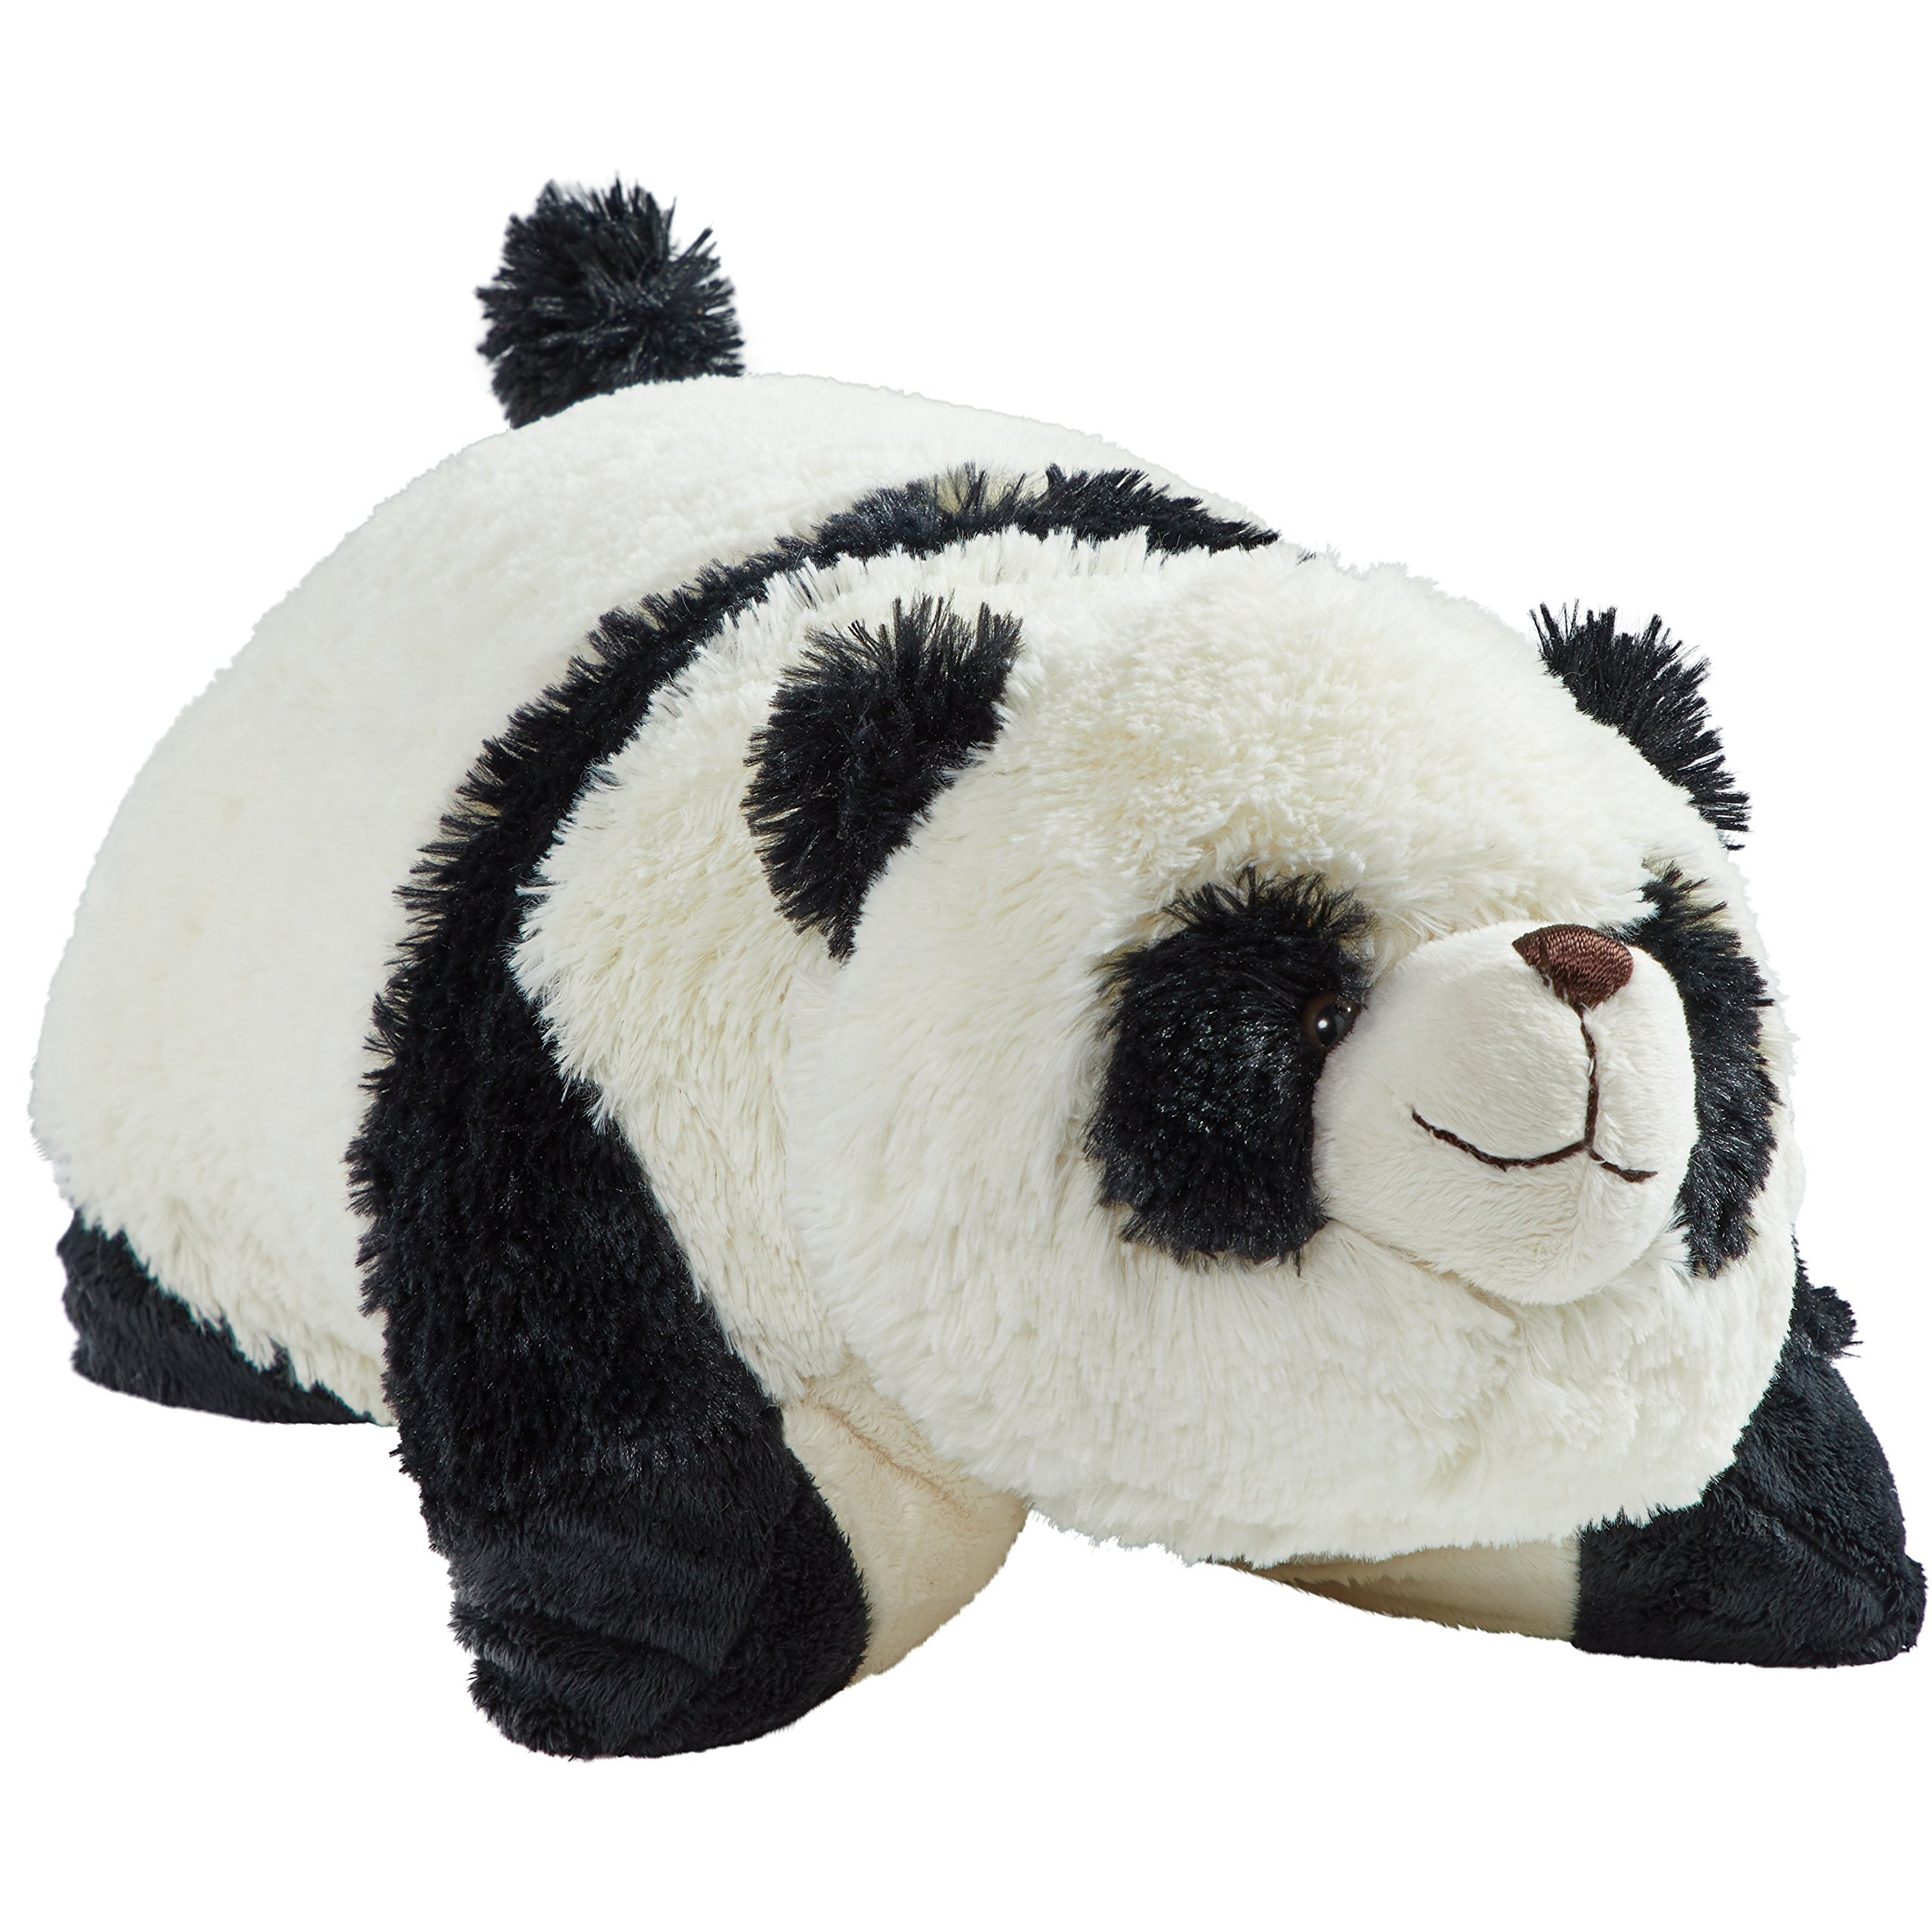 Pillow Pets My Signature, Comfy Panda, 18'' Stuffed Animal Plush Toy by Pillow Pets